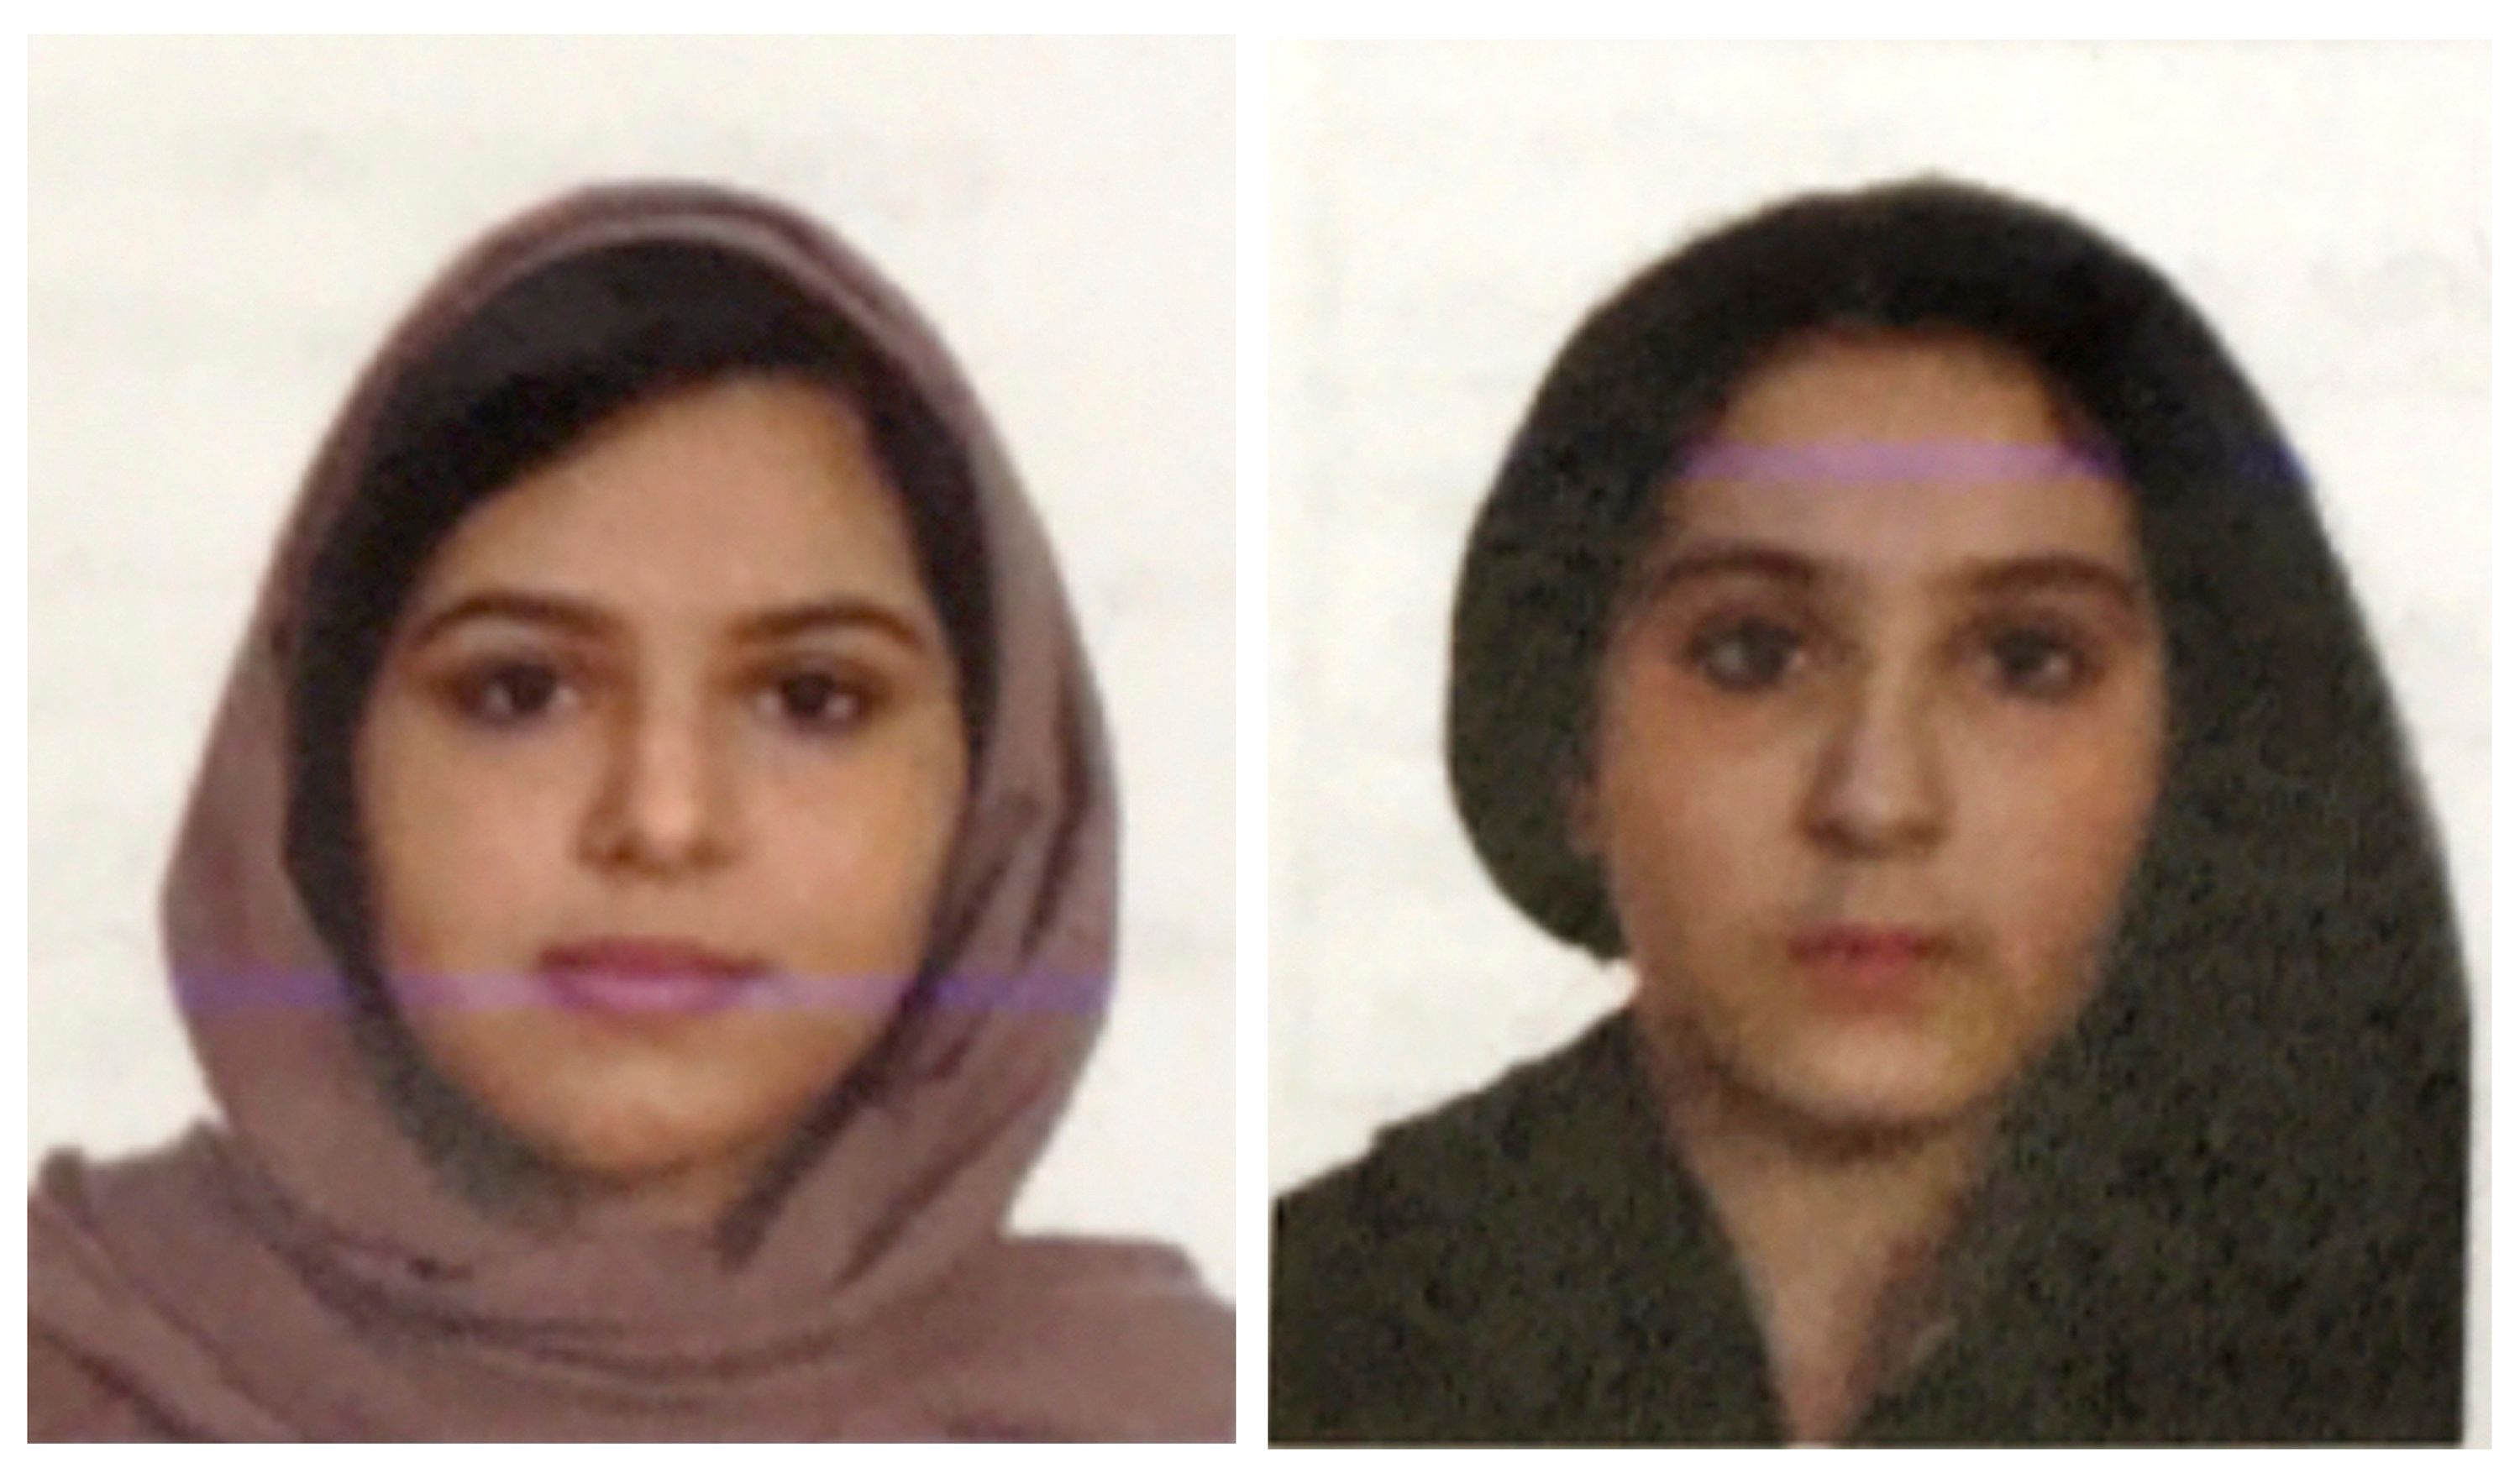 These two undated photos provided by the New York City Police Department (NYPD) show sisters Rotana, left, and Tala Farea, whose fully clothed bodies, bound together with tape and facing each other, were discovered on on the banks of New York City's Hudson River waterfront on Oct. 24, 2018. The Farea sisters from Saudia Arabia, Rotana, 22 and Tala, 16, had been living in Fairfax, Virgina and were reported missing in August. Their mother told detectives the day before the bodies were discovered, she received a call from an official at the Saudi Arabian Embassy, ordering the family to leave the U.S. because her daughters had applied for political asylum, New York police said Tuesday Oct. 30, 2018. (NYPD via AP)